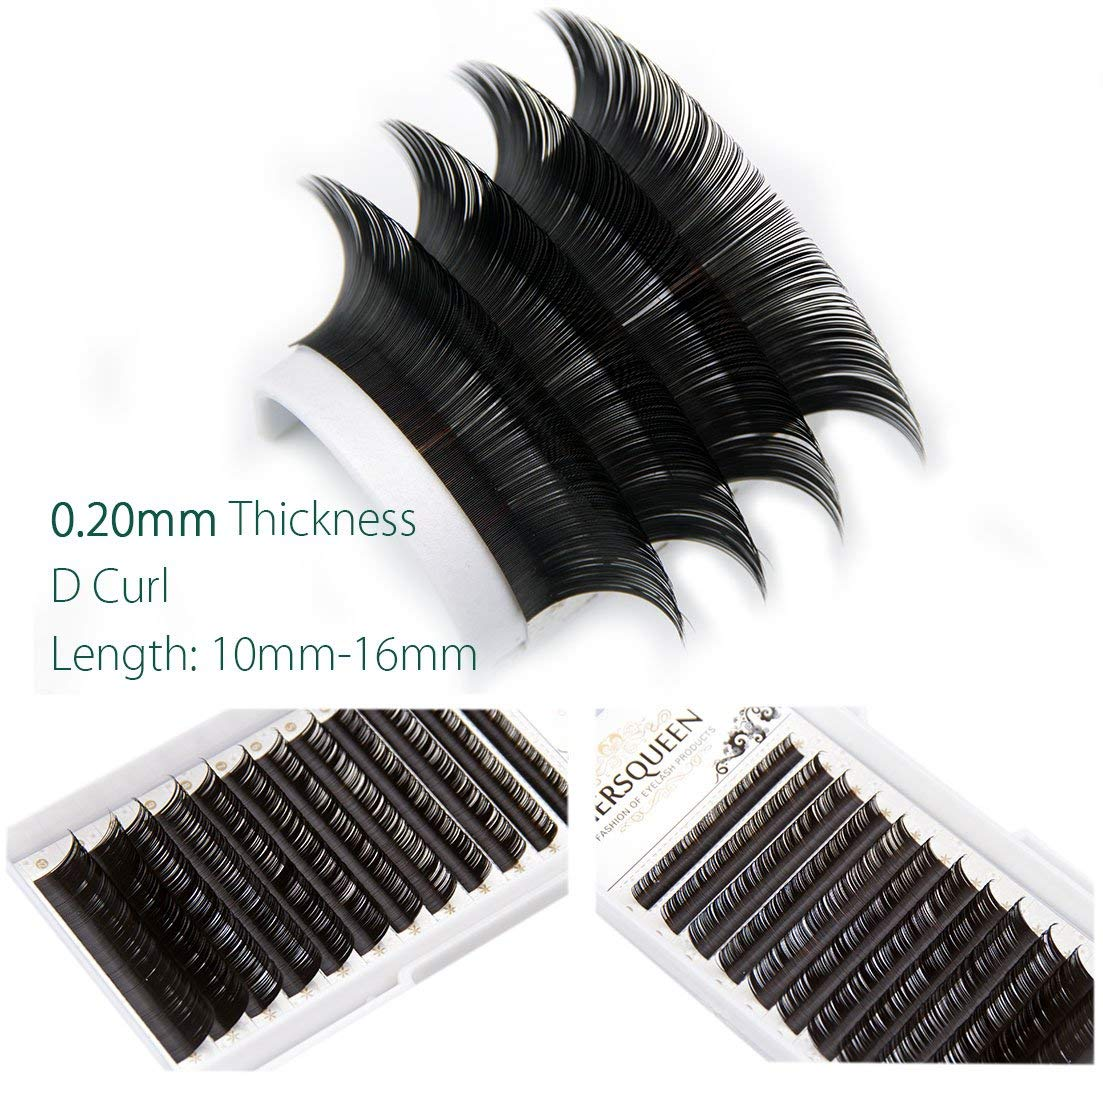 Cheap Individual Lashes Extension Find Individual Lashes Extension